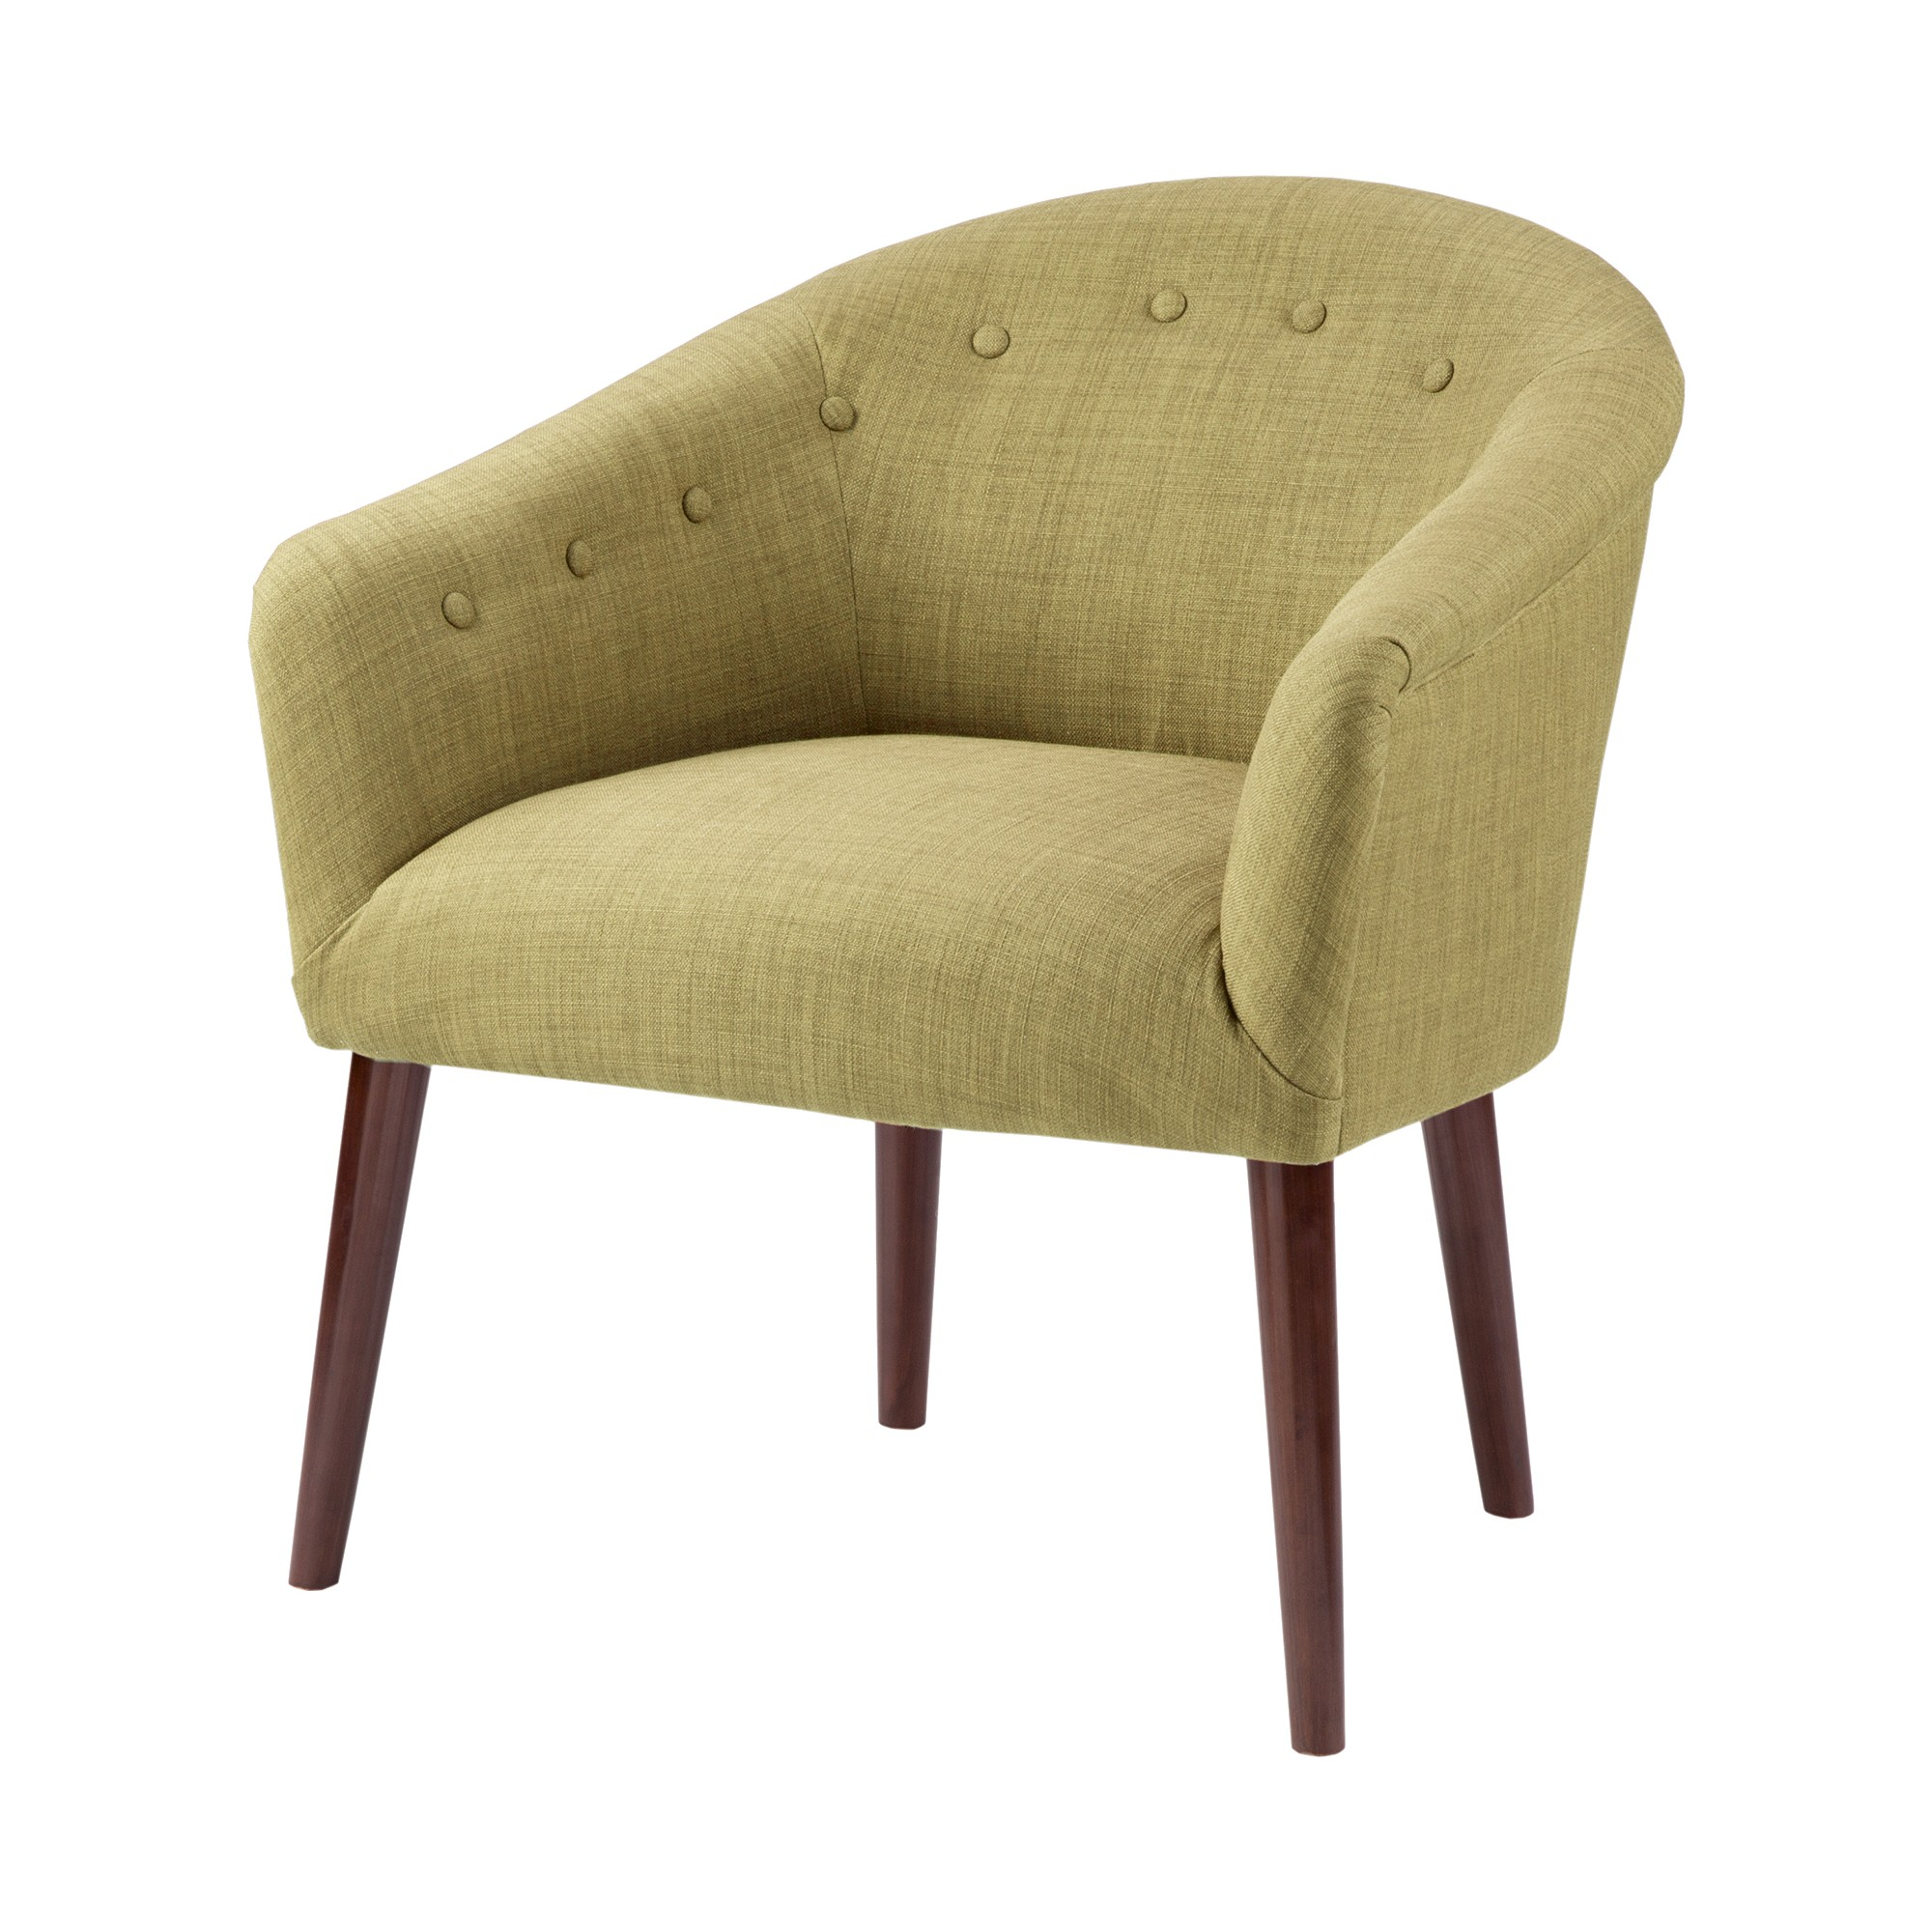 Green Upholstered Chair Upholstered Chair Yellow Green Products Upholstered Chairs